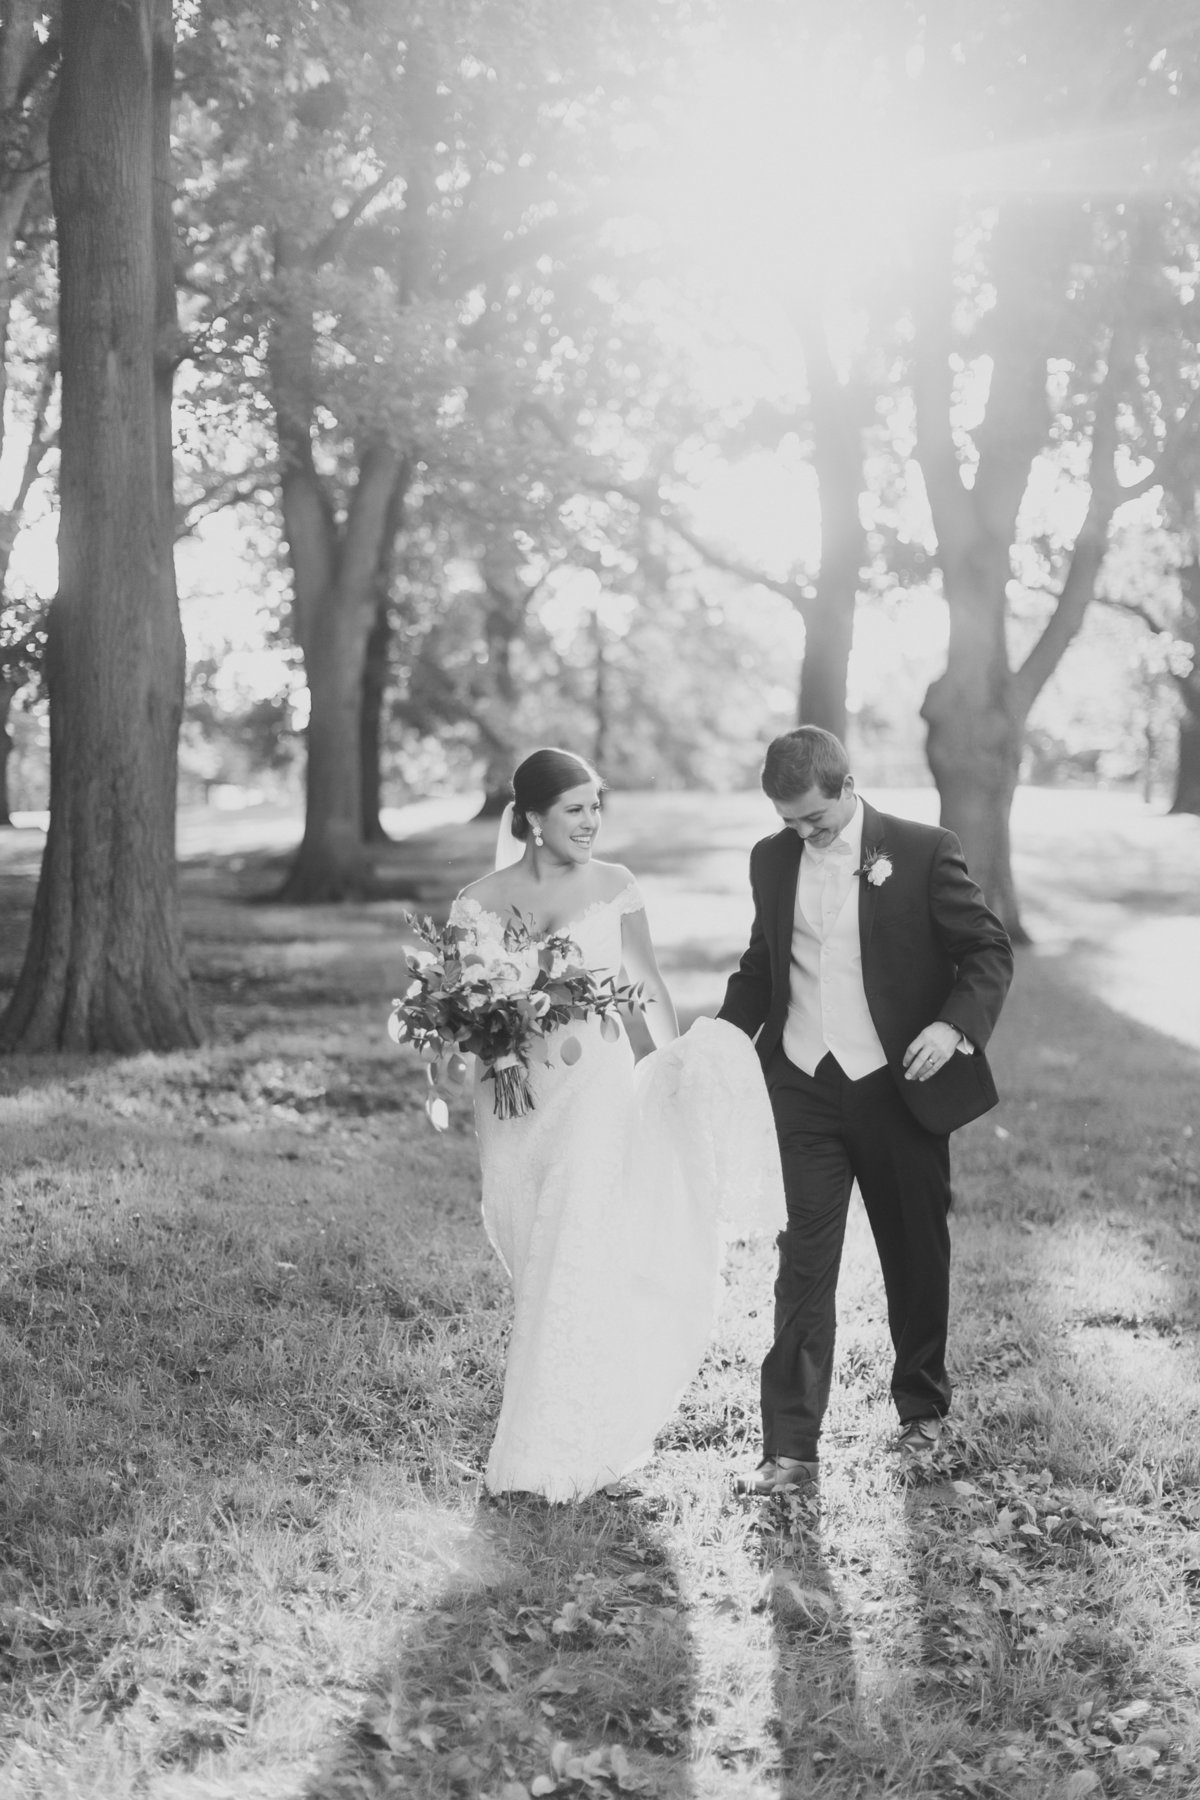 TheGalleryEventSpaceWedding_KansascityWedding_TaylorJared_CatherineRhodesPhotography-4068-2-Edit